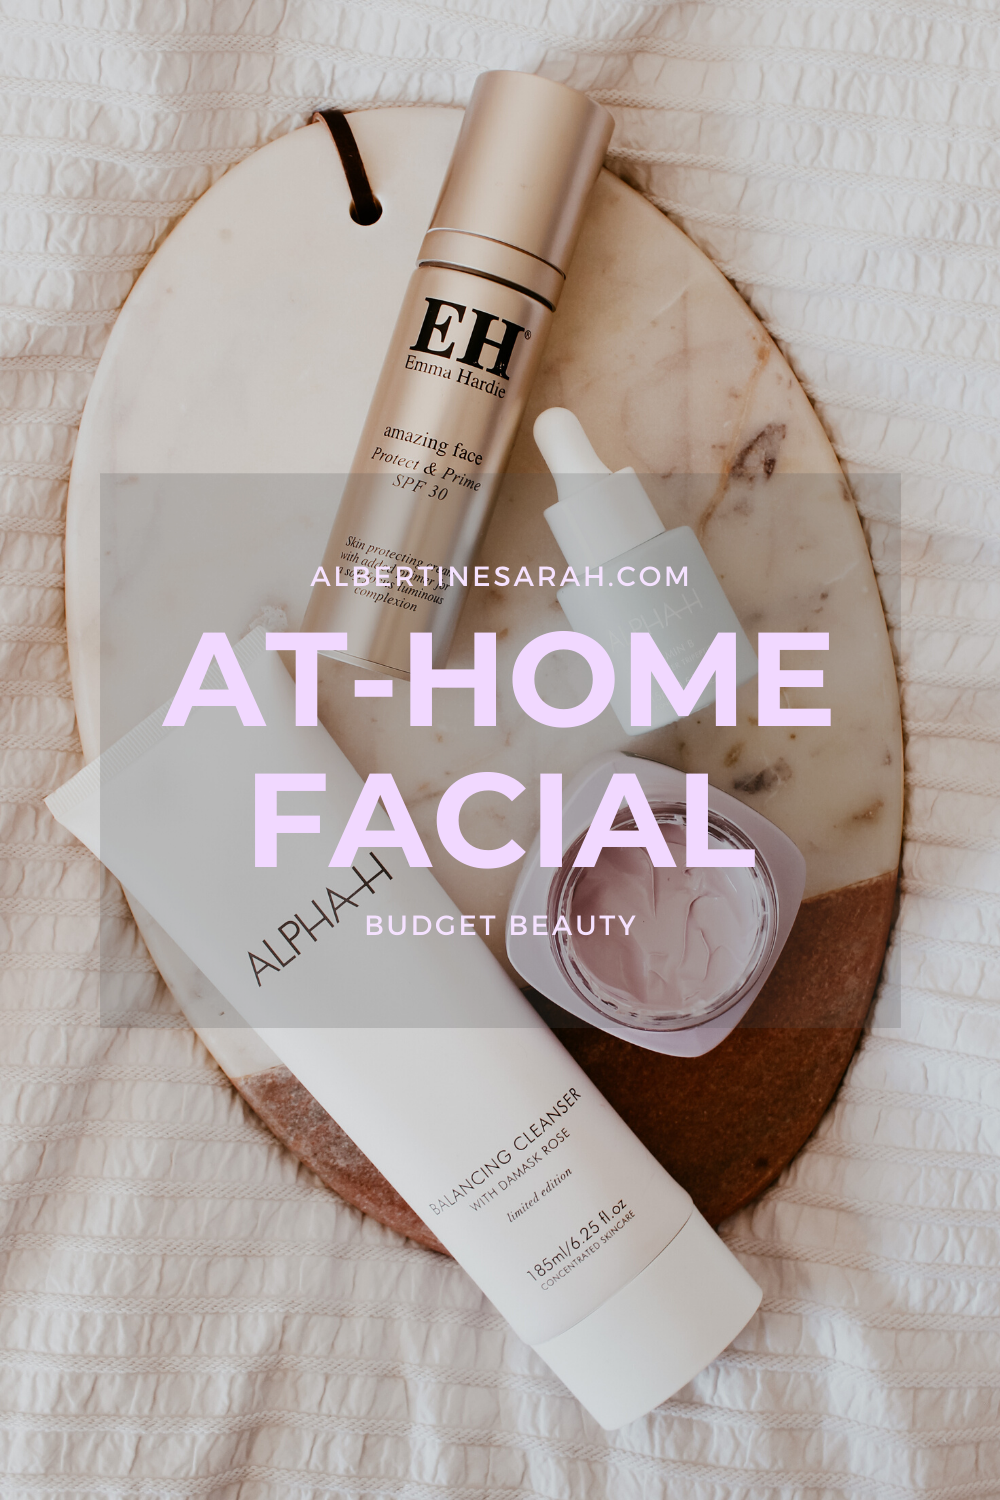 at-home facial Pinterest graphic